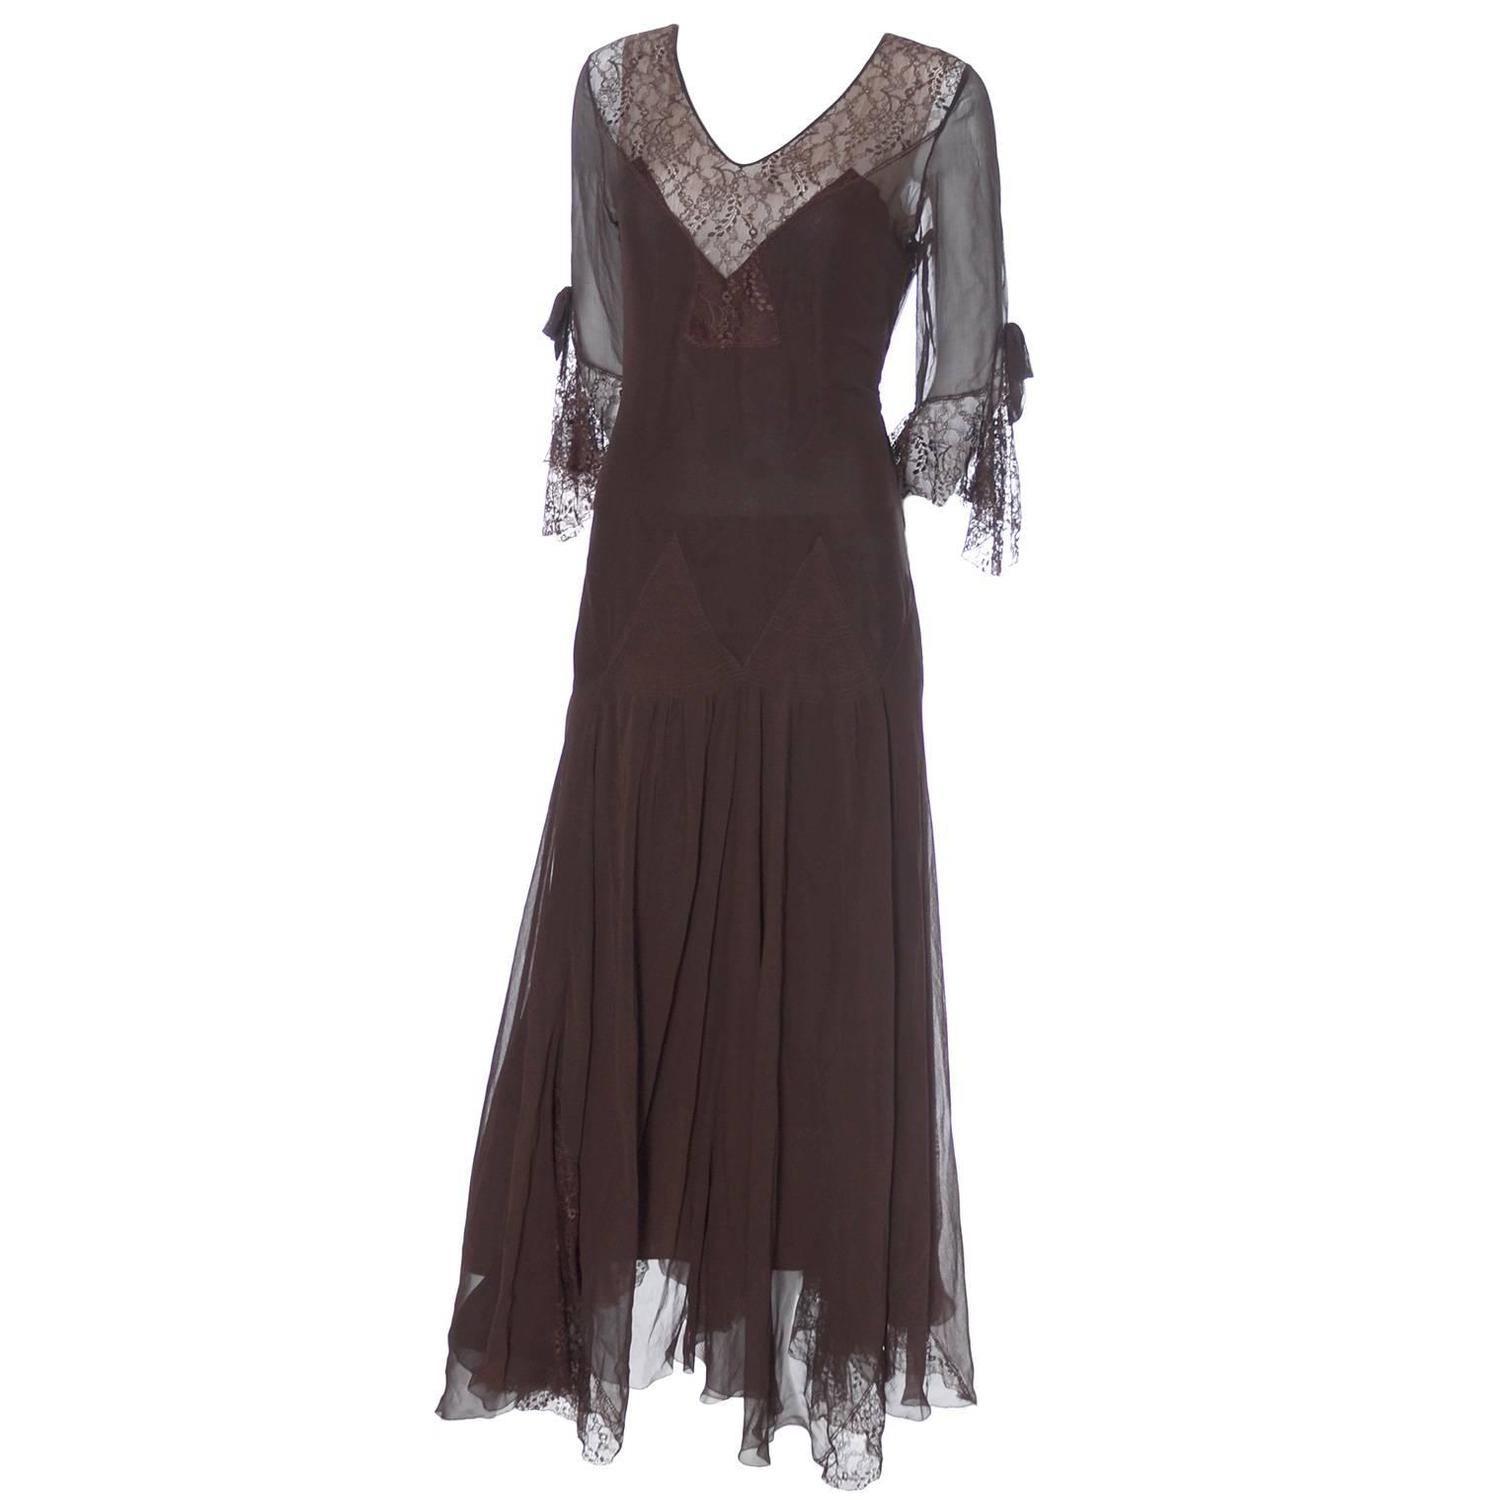 Silk chiffon vintage dress late 1920s early 1930 s evening gown fine